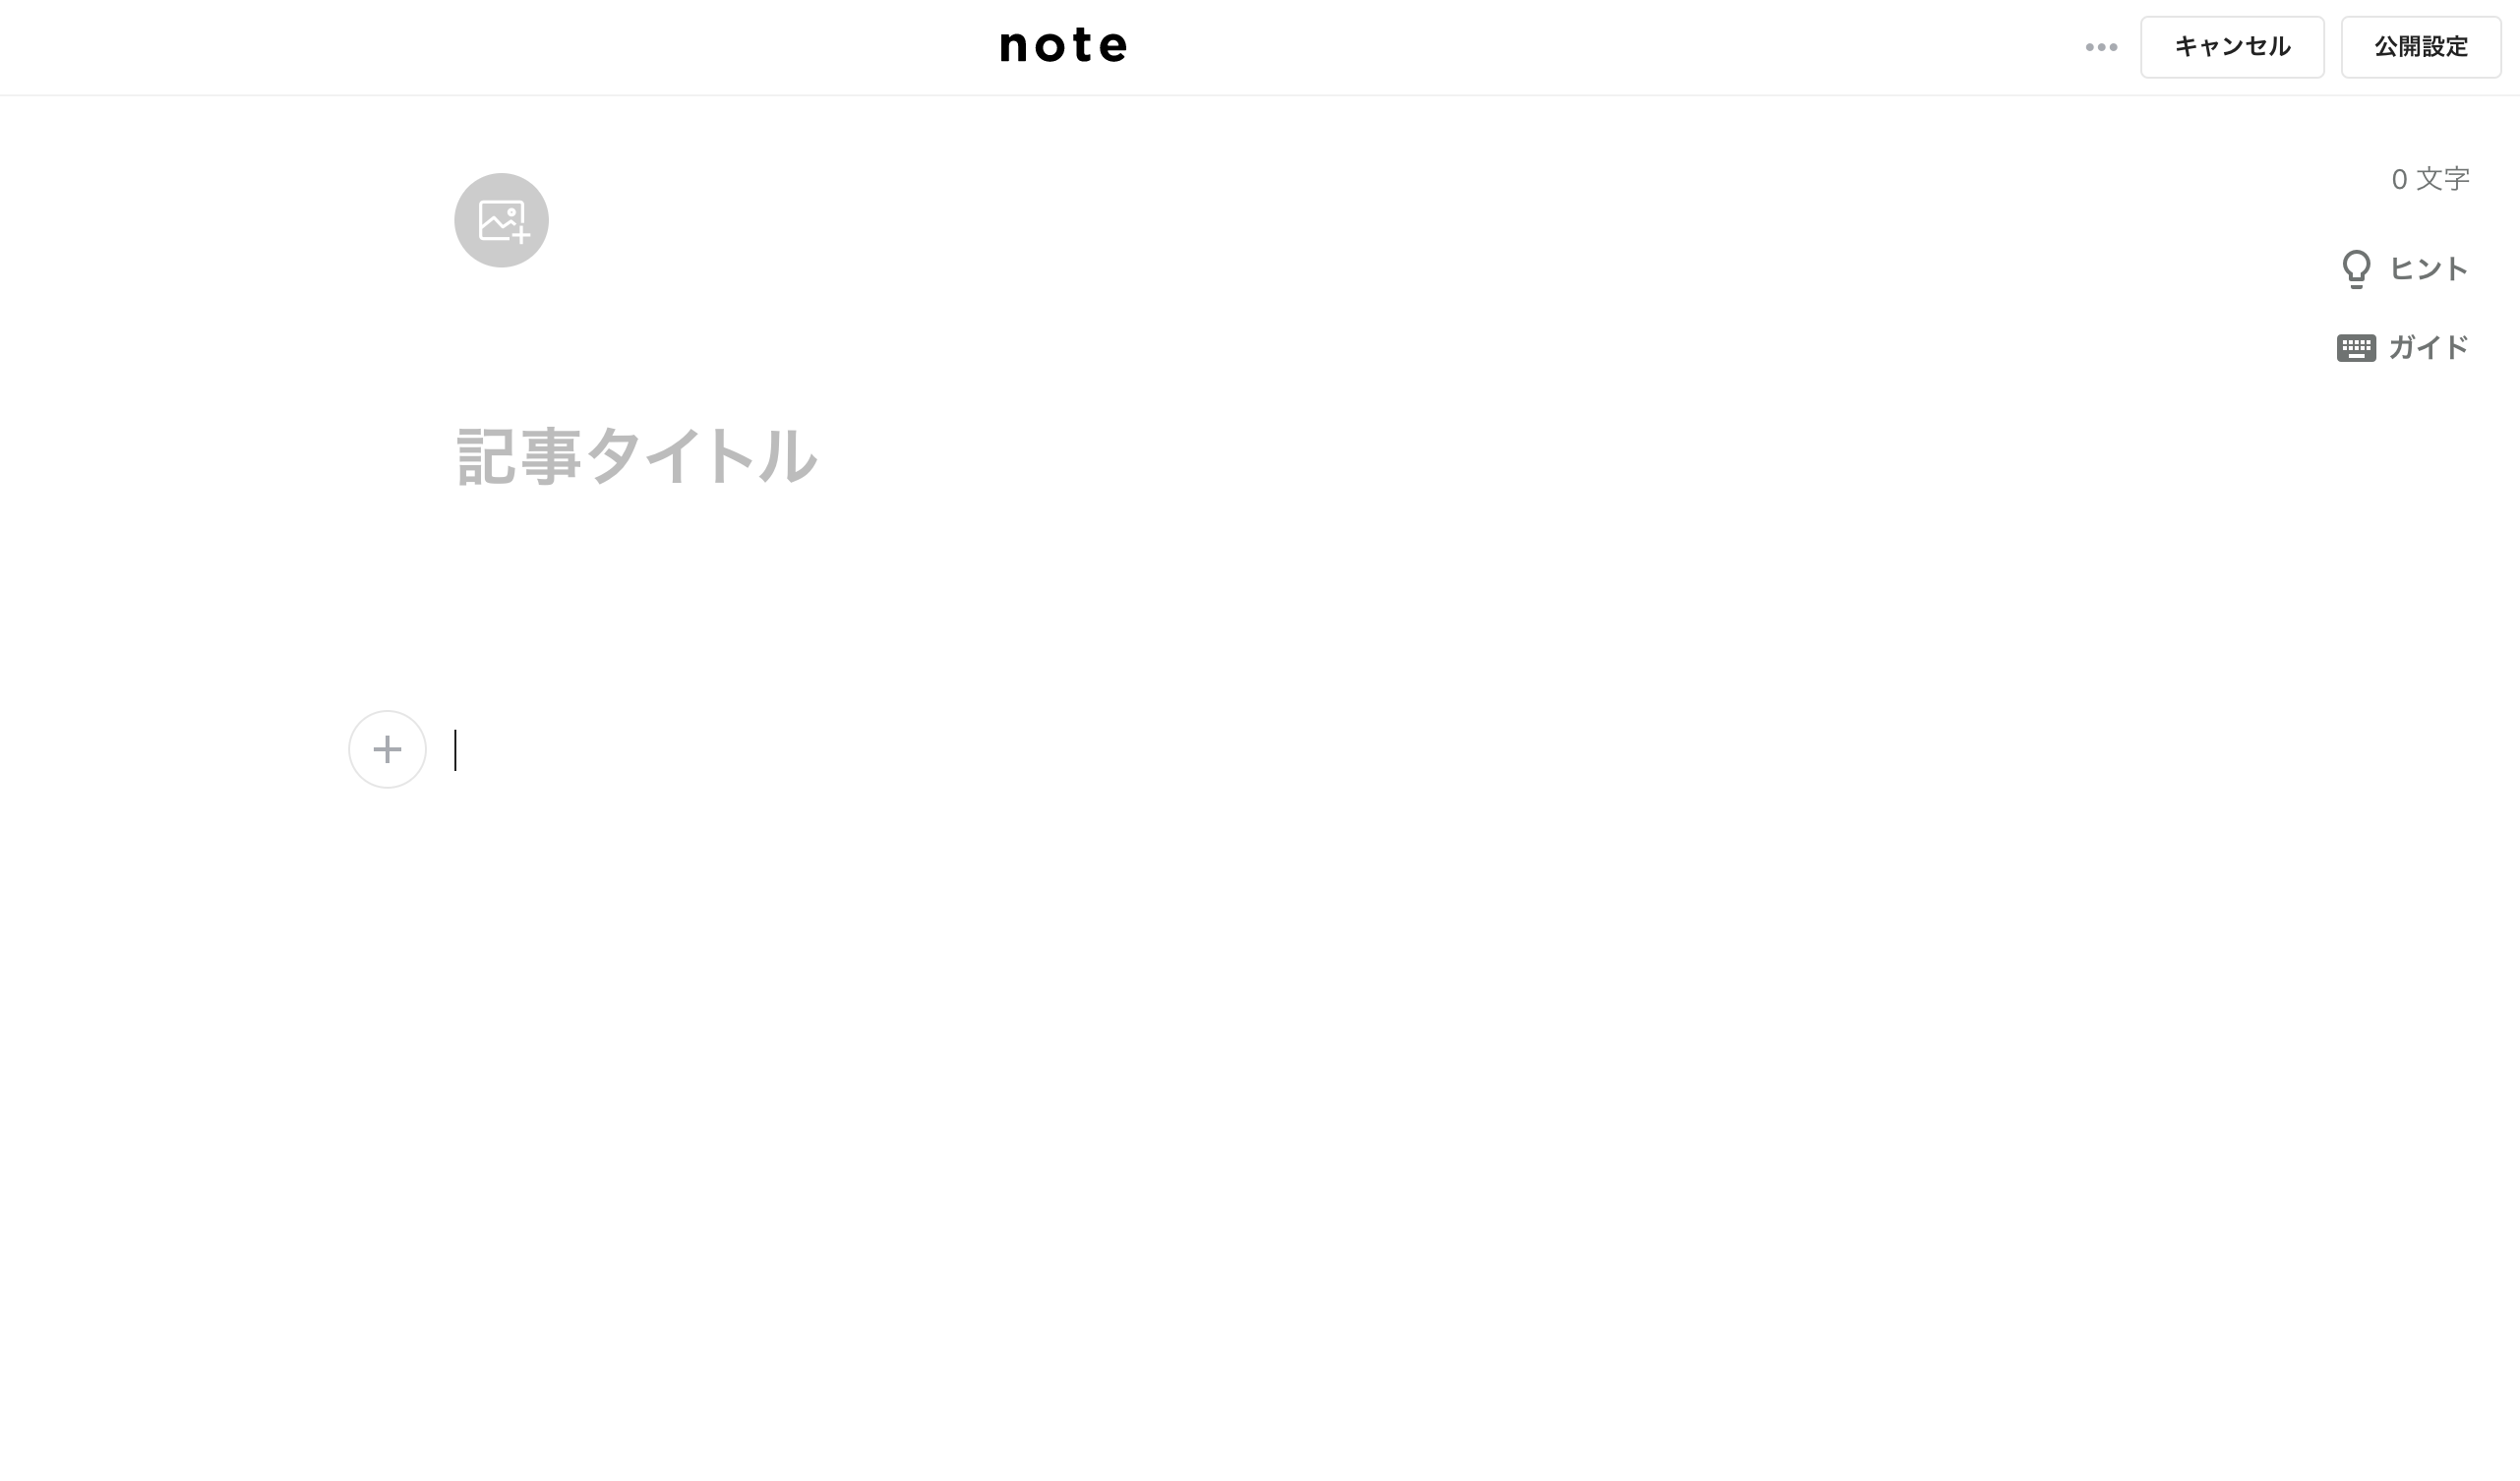 noteのエディタ